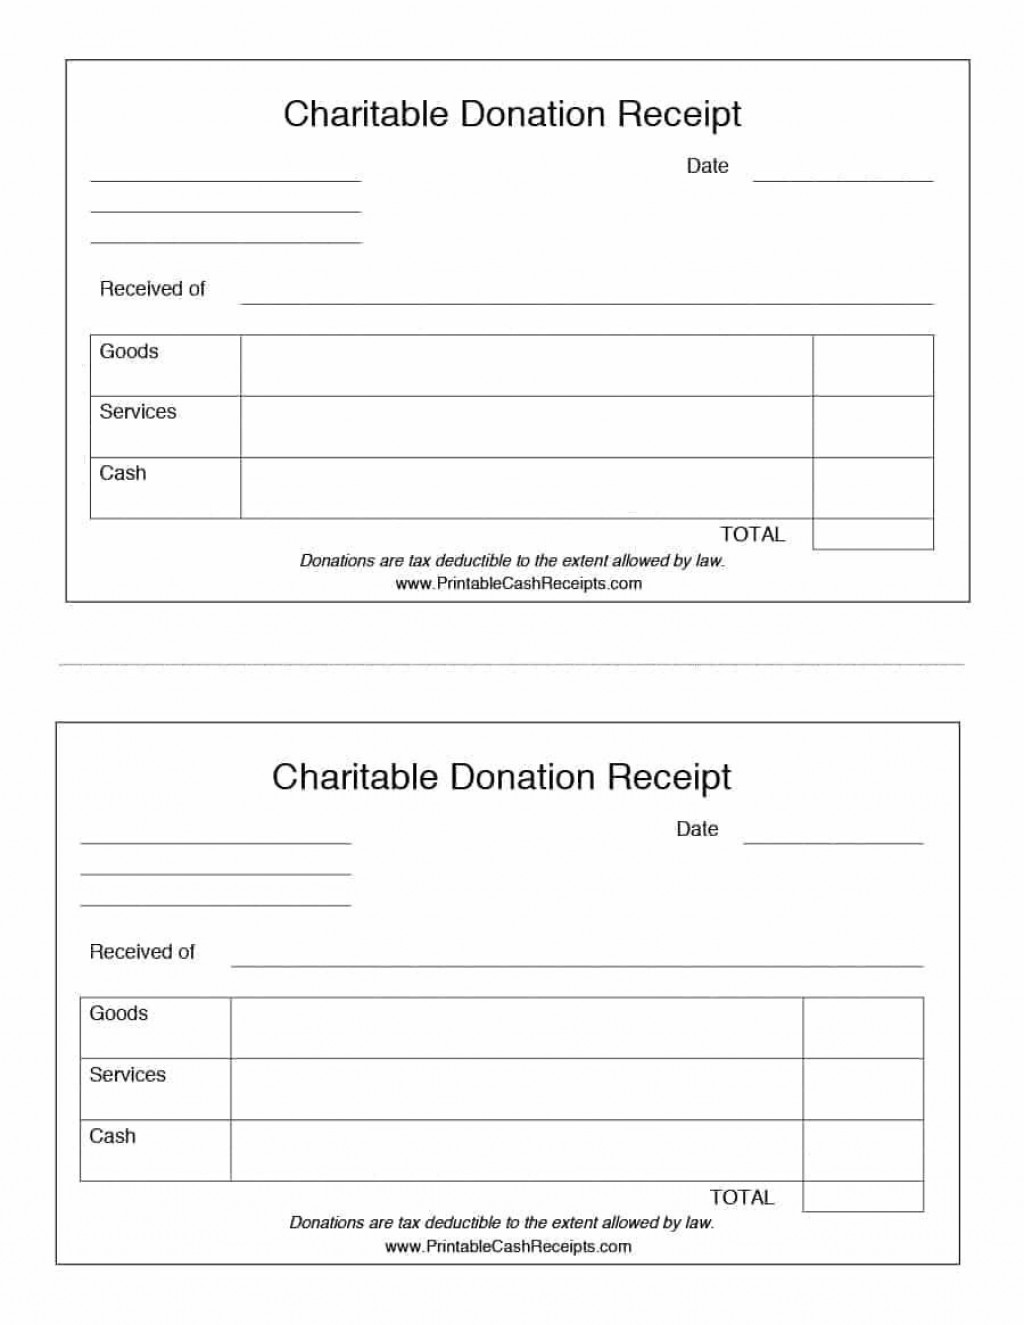 000 Simple Tax Deductible Donation Receipt Printable Example Large